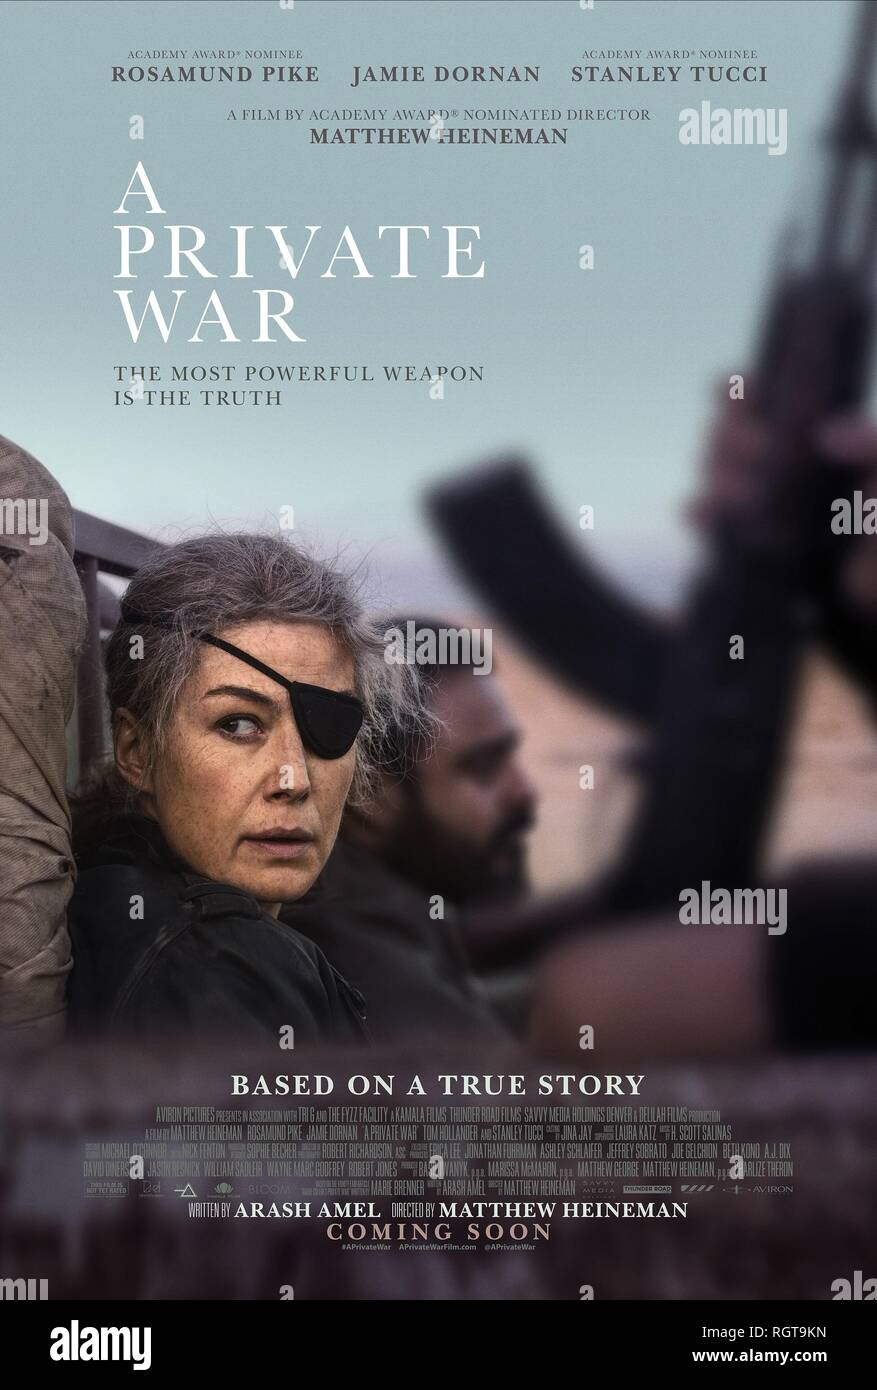 A PRIVATE WAR, ROSAMUND PIKE POSTER, 2018 - Stock Image